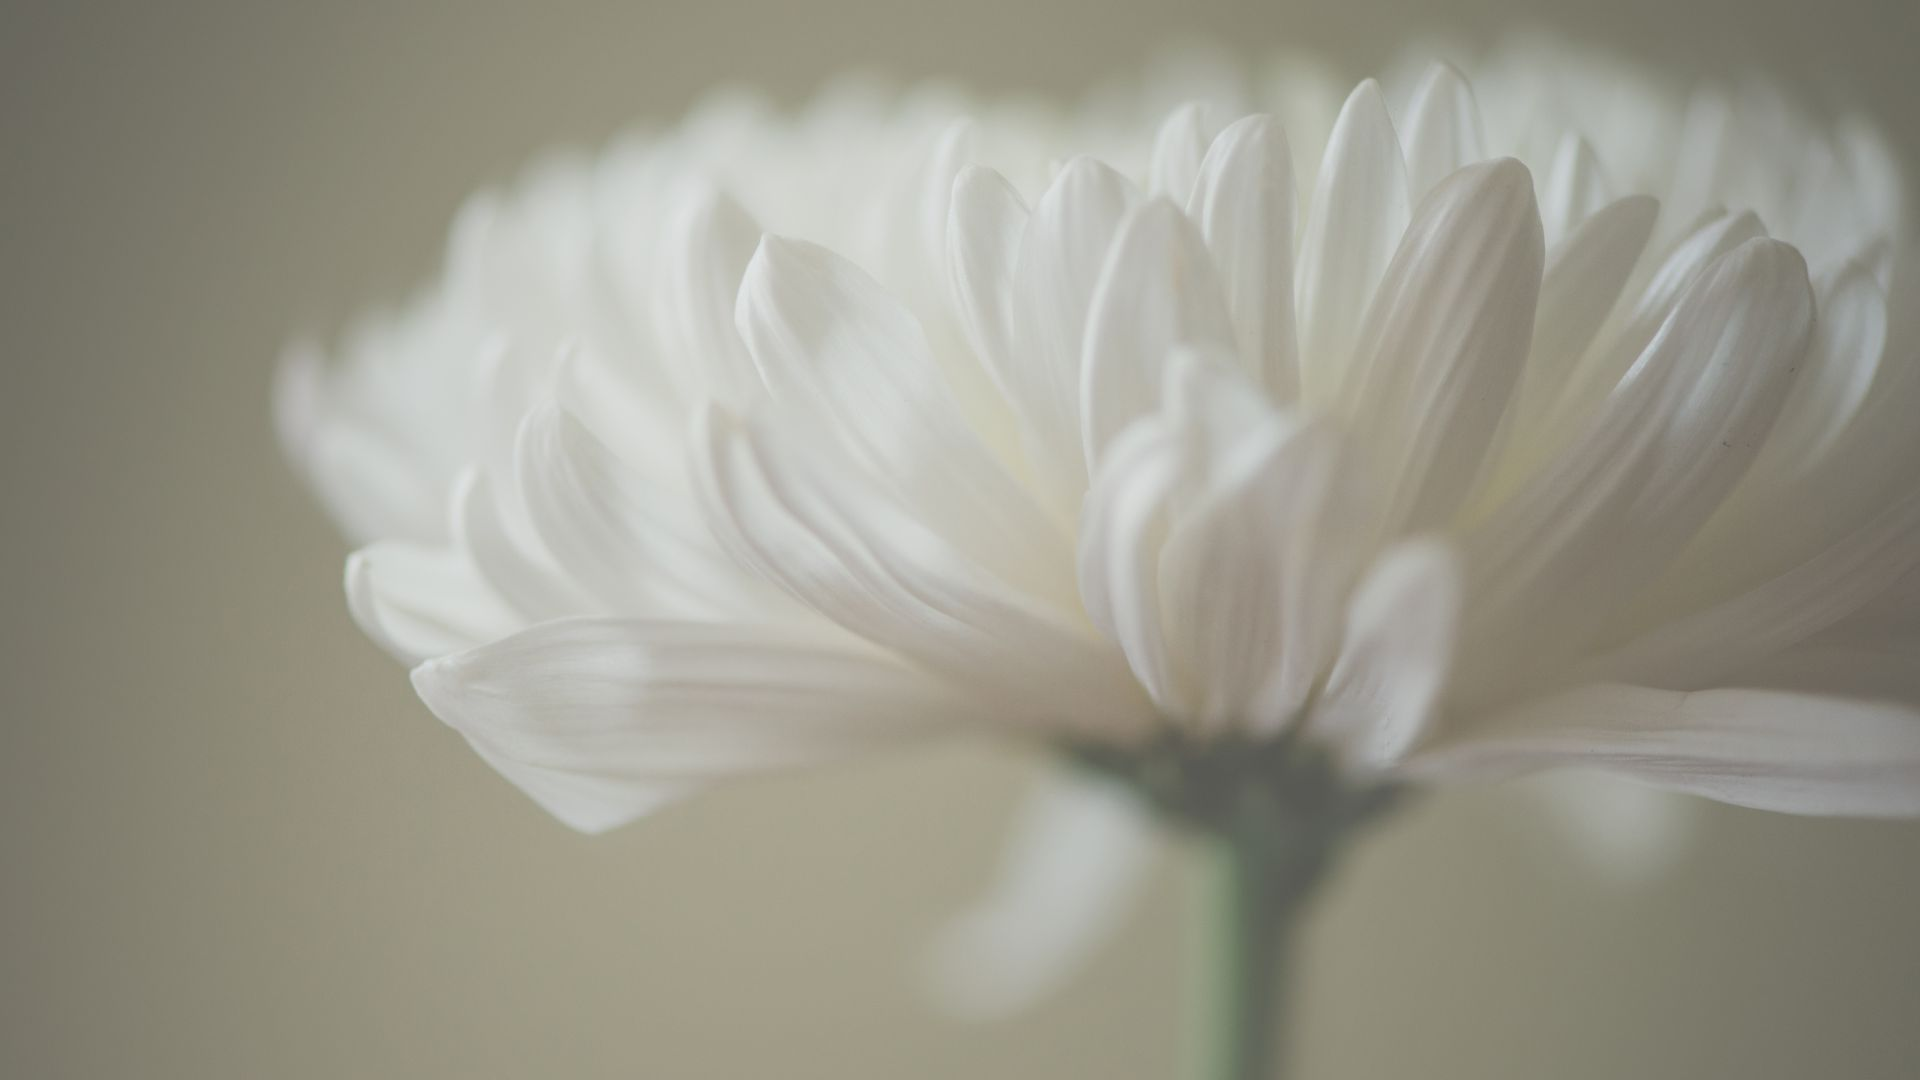 Астра, 5k, 4k, макро, лепестки, белый, Aster, 5k, 4k wallpaper, macro, petals, white (horizontal)